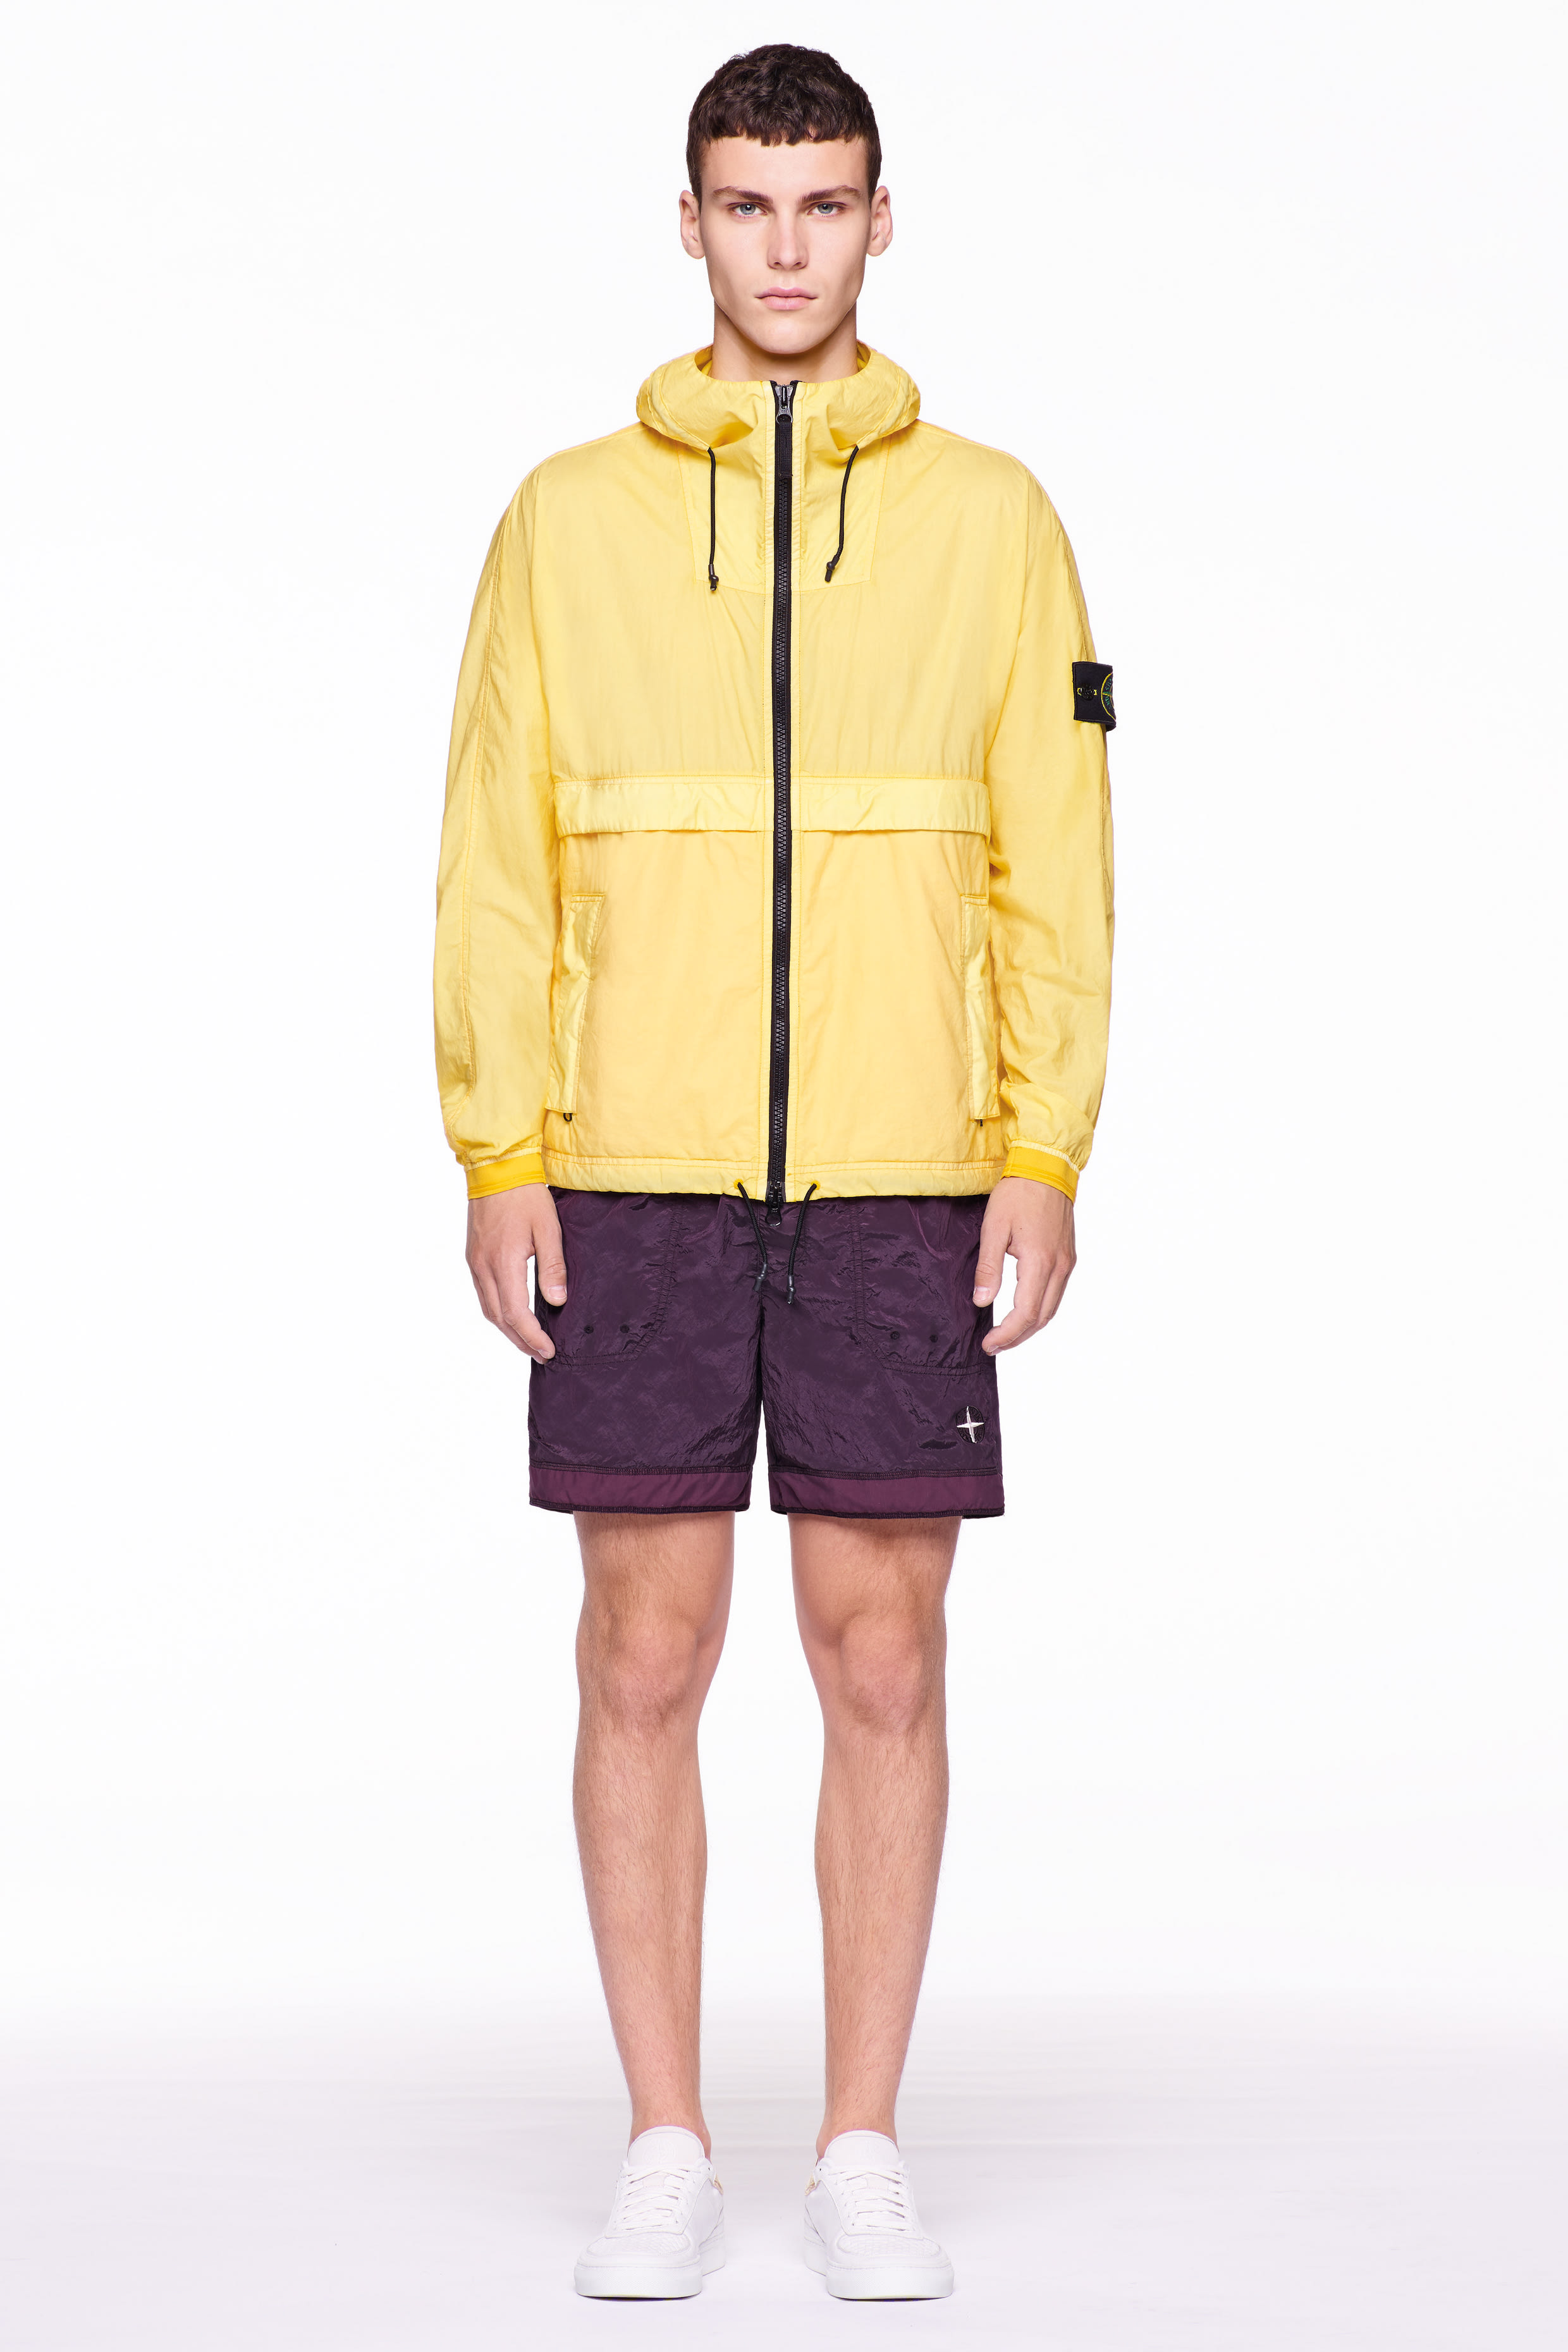 ss18-si19